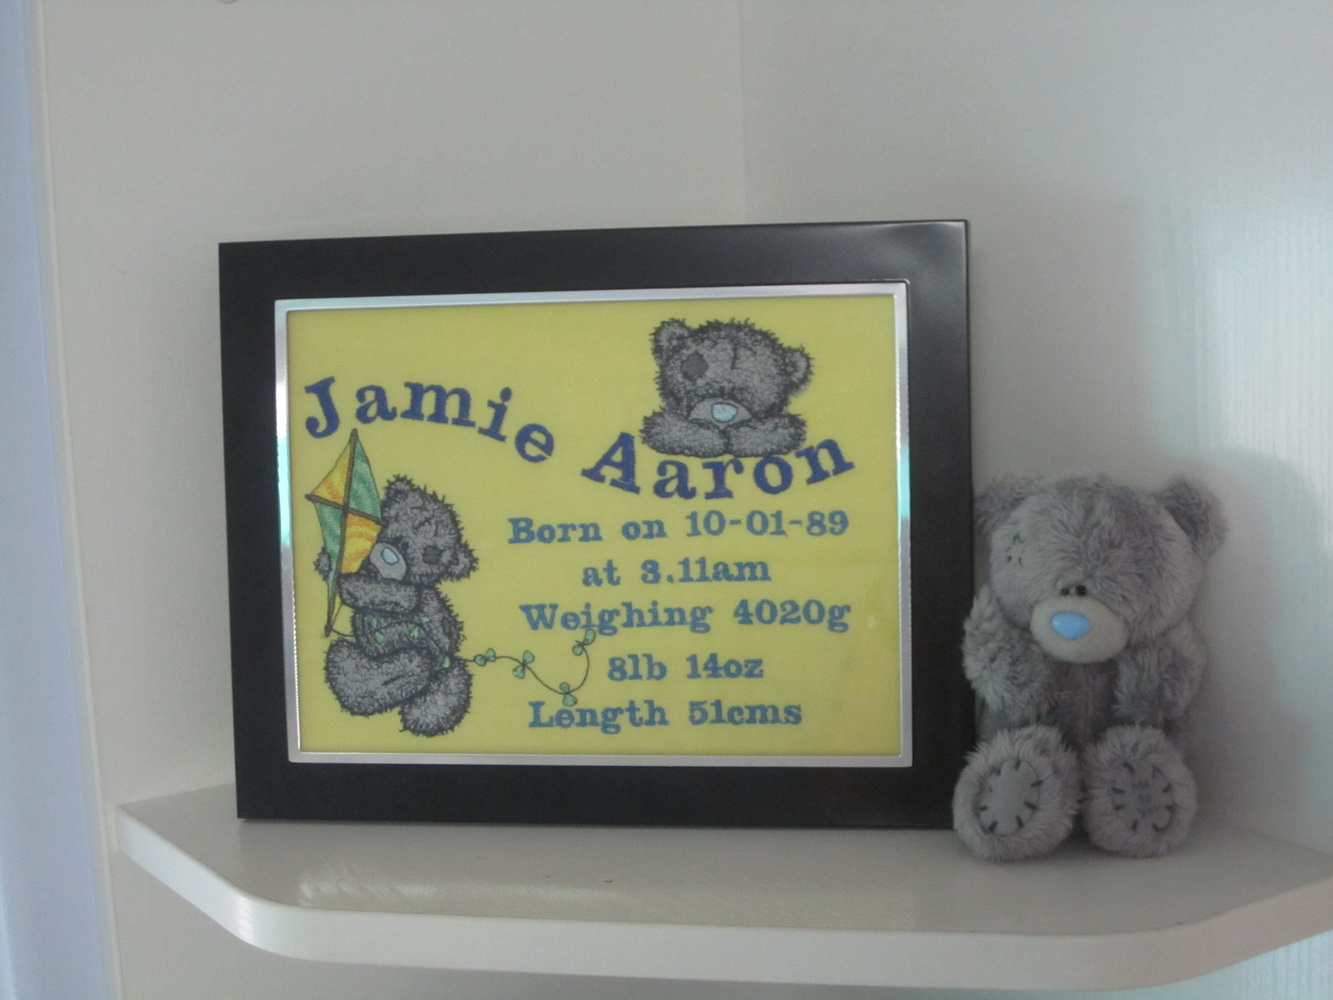 Teddy bear designs embroidered on birth announcement frame